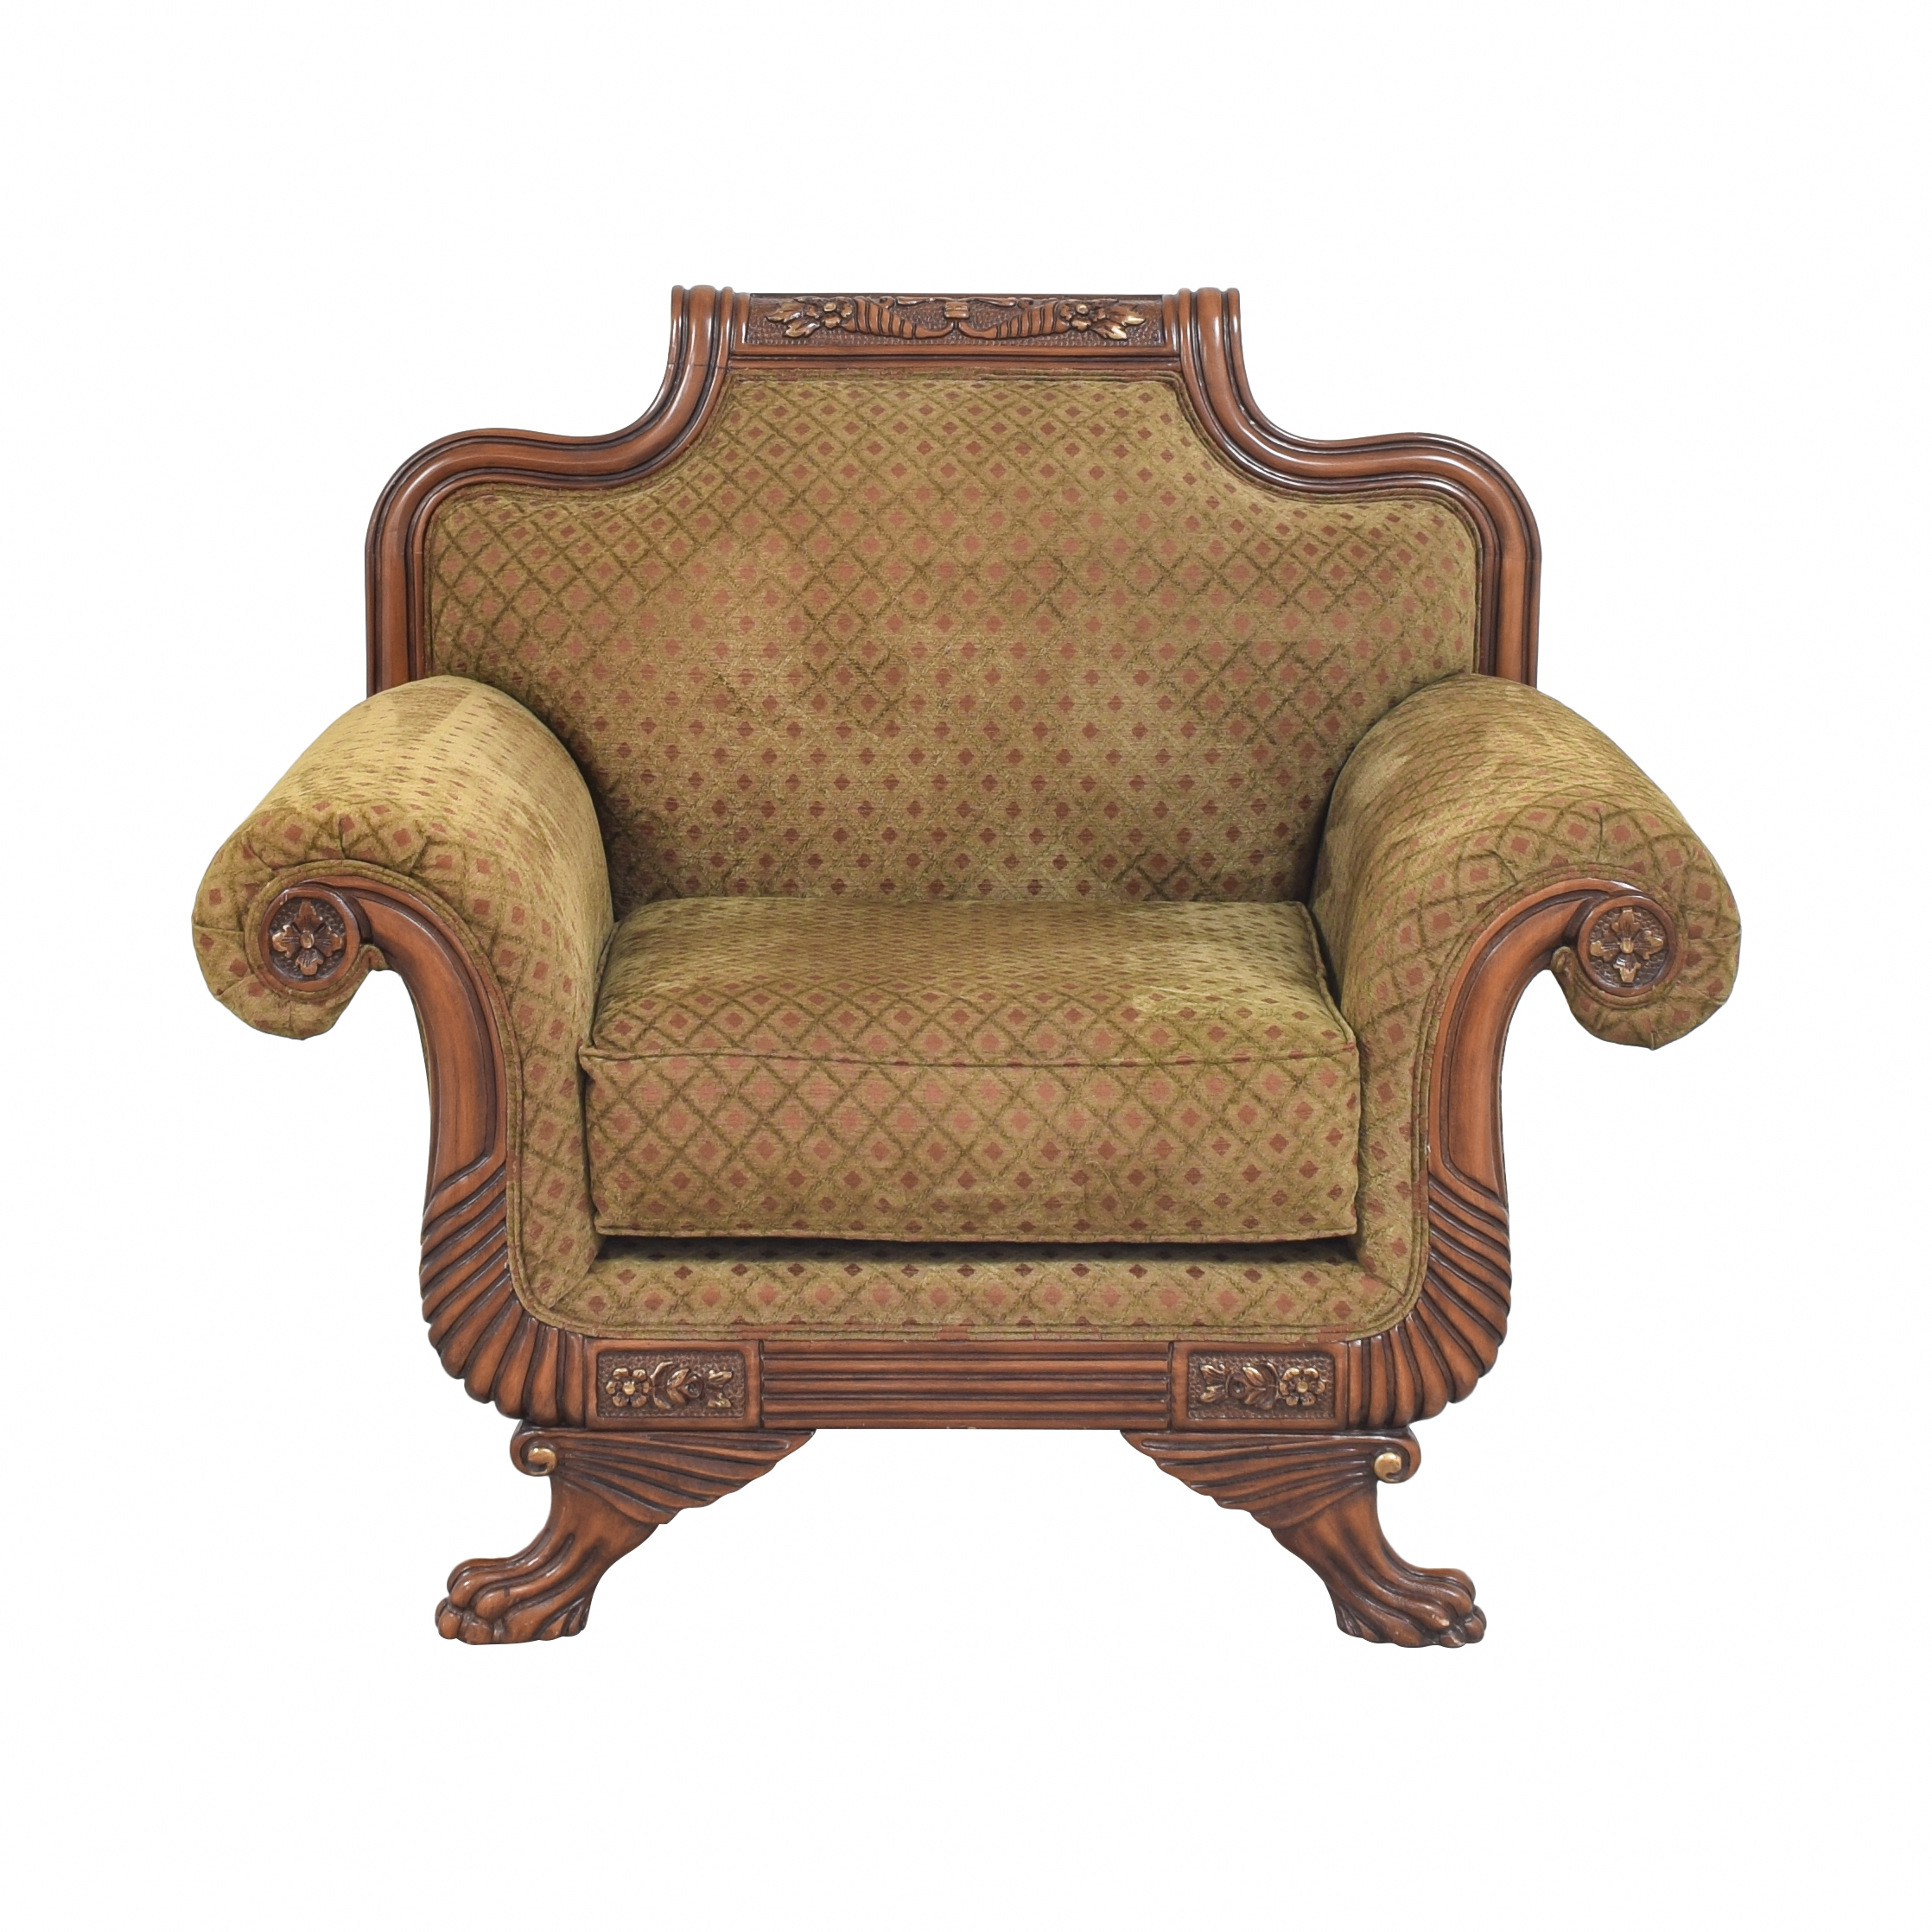 shop Francesca Imports Francesca Imports Roll Arm Chair online